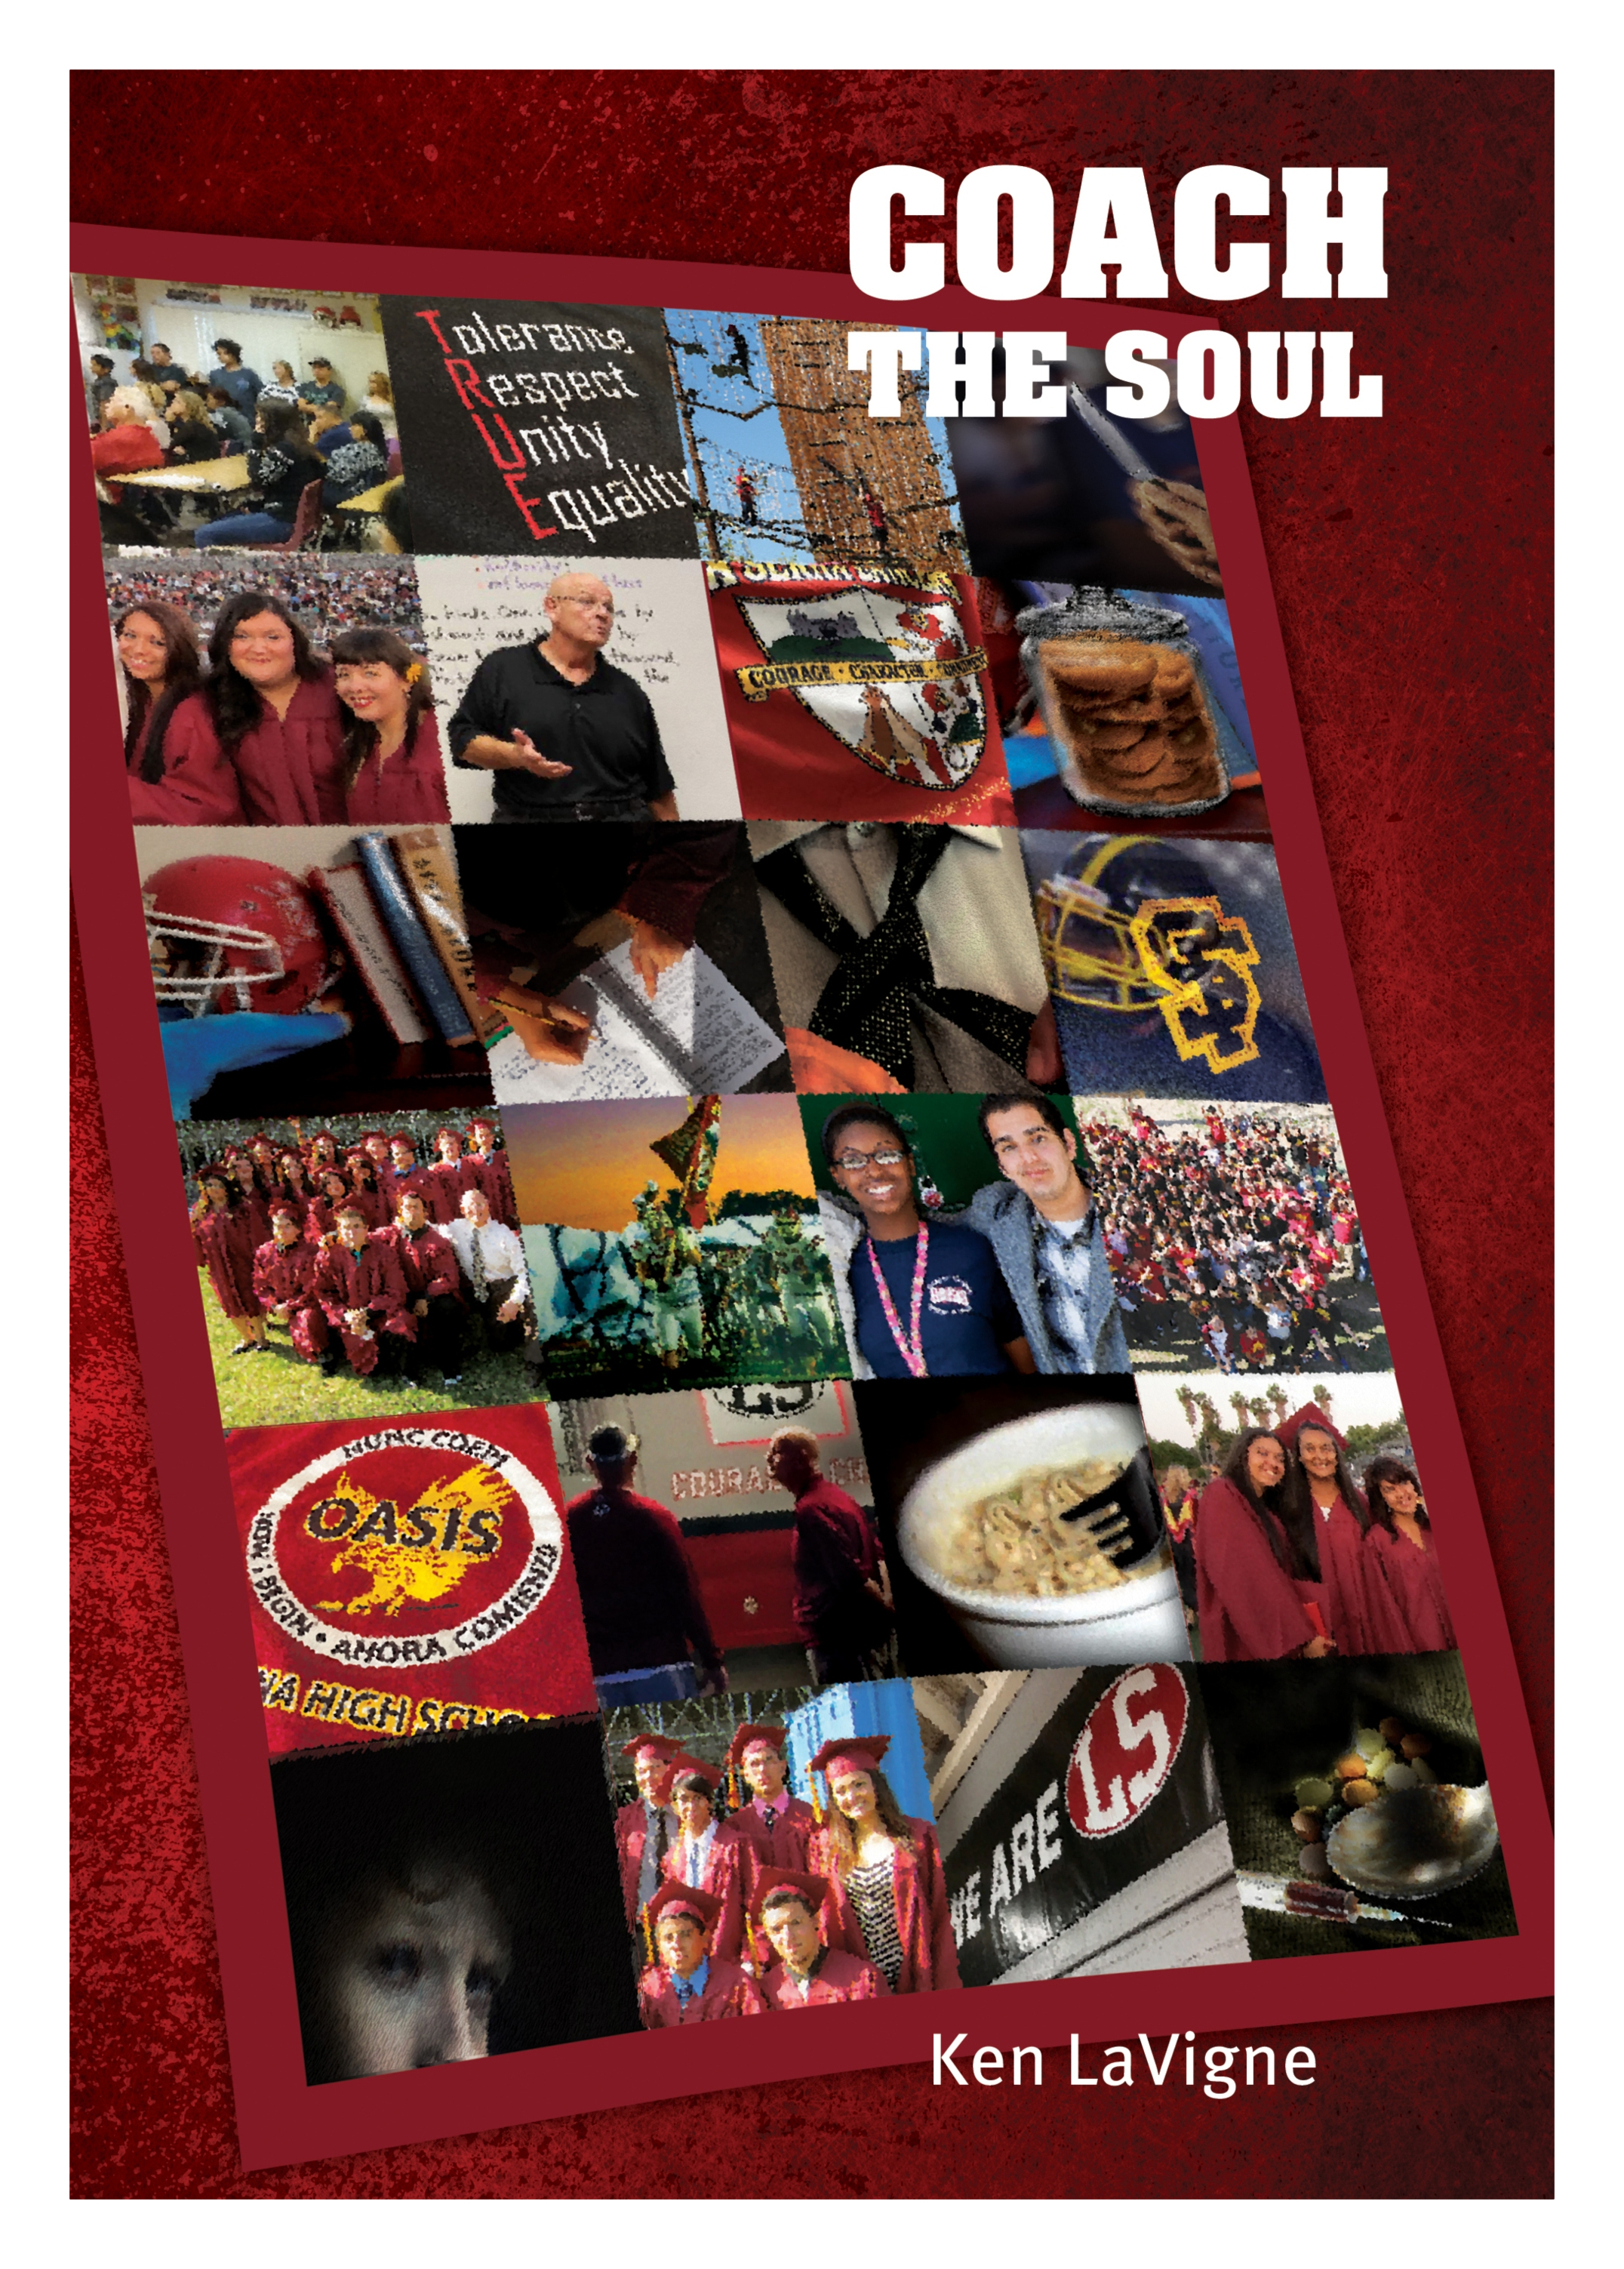 Coach the Soul - Book Cover with frame